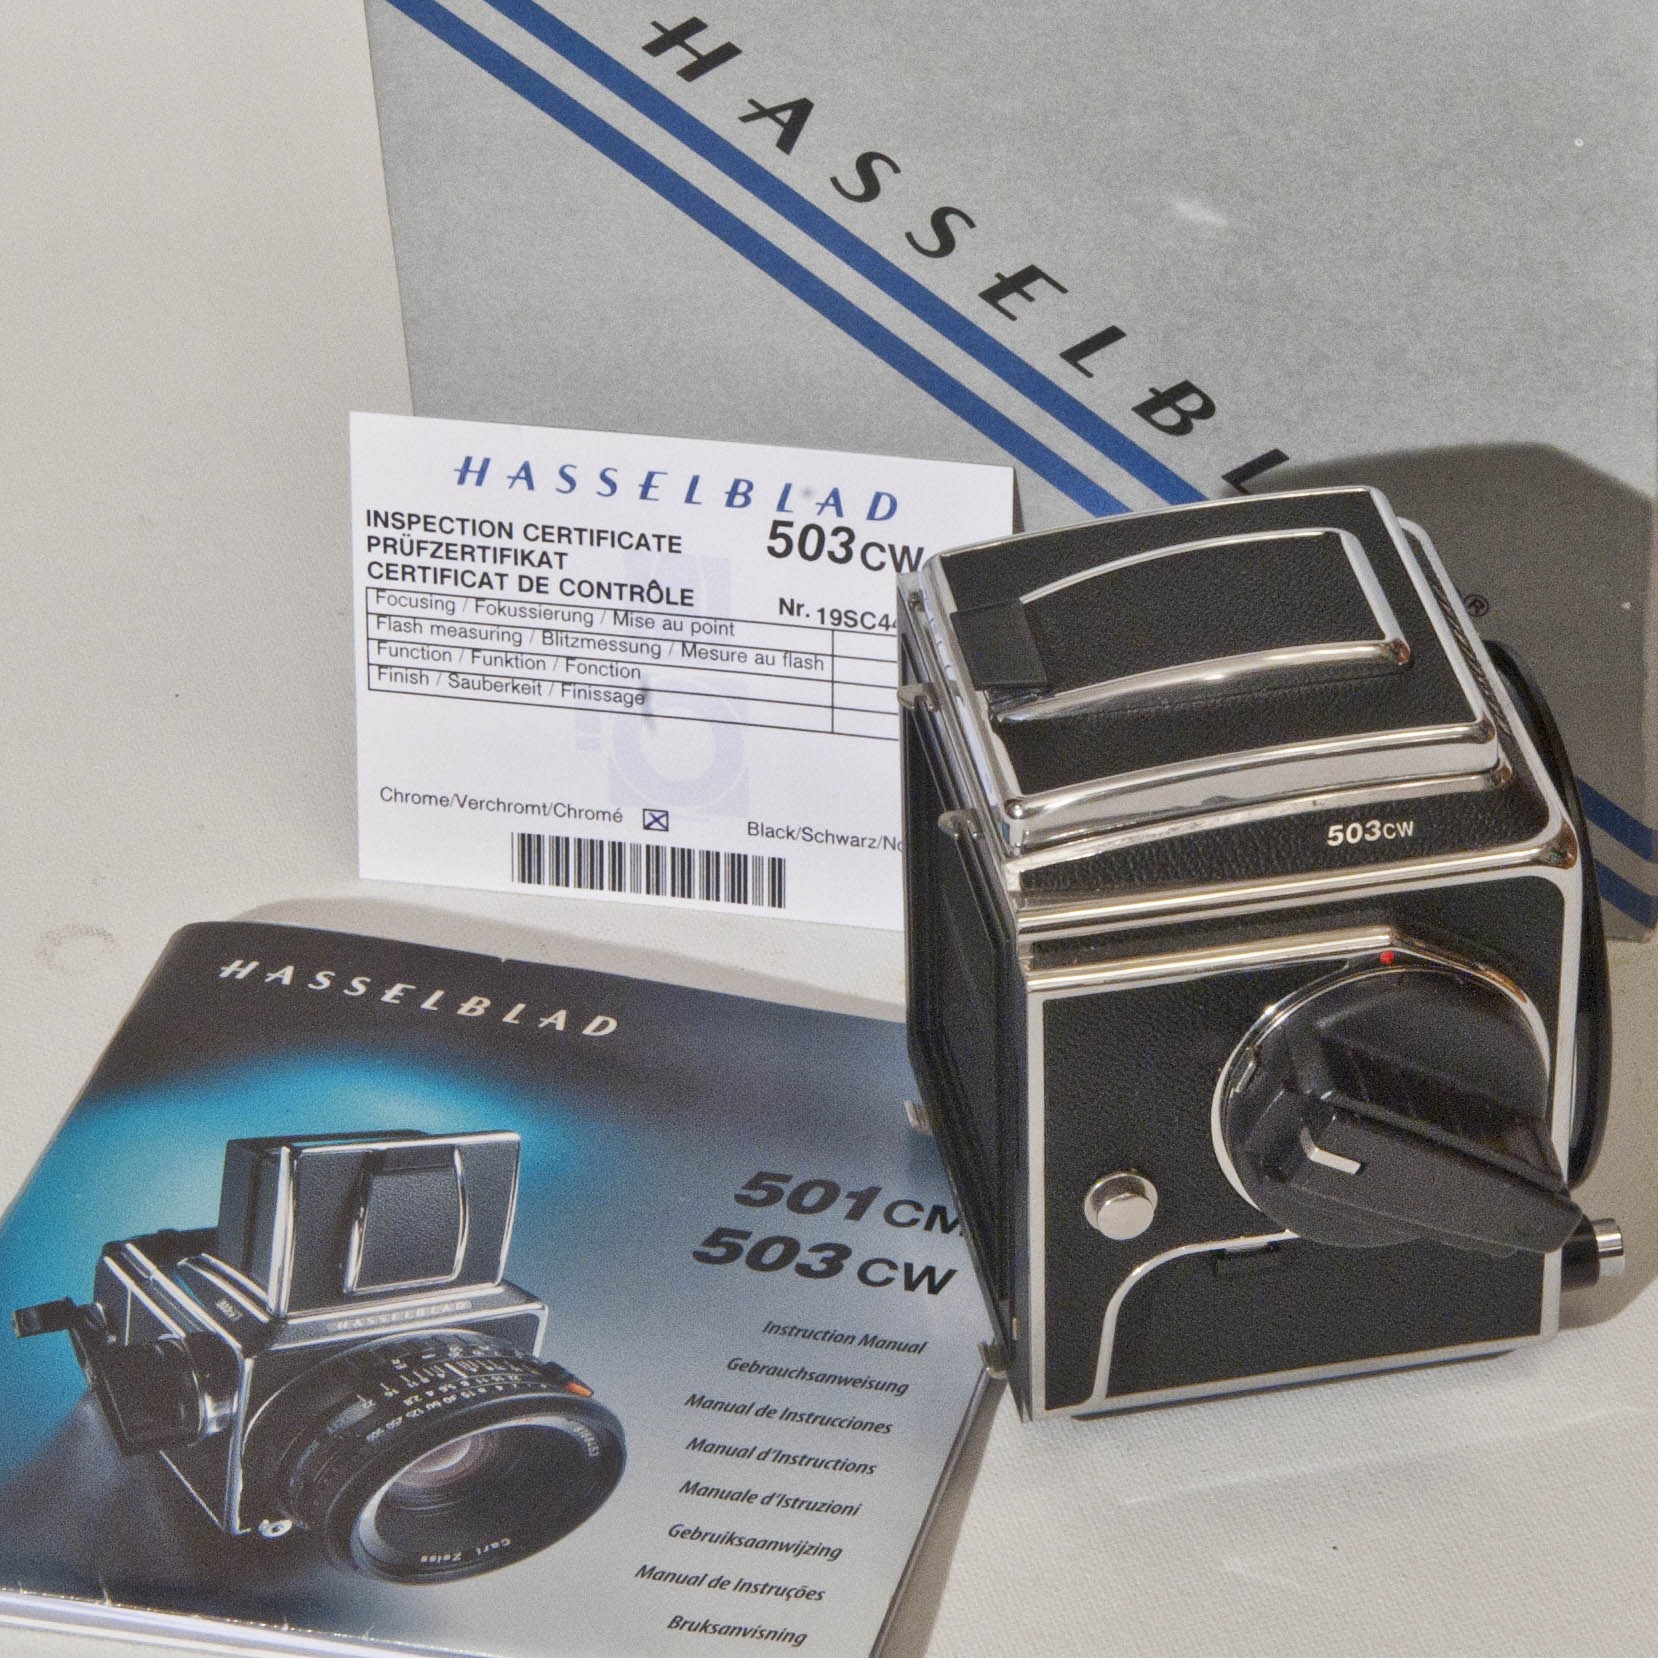 File:Hasselblad-503cw hg jpg - Wikimedia Commons